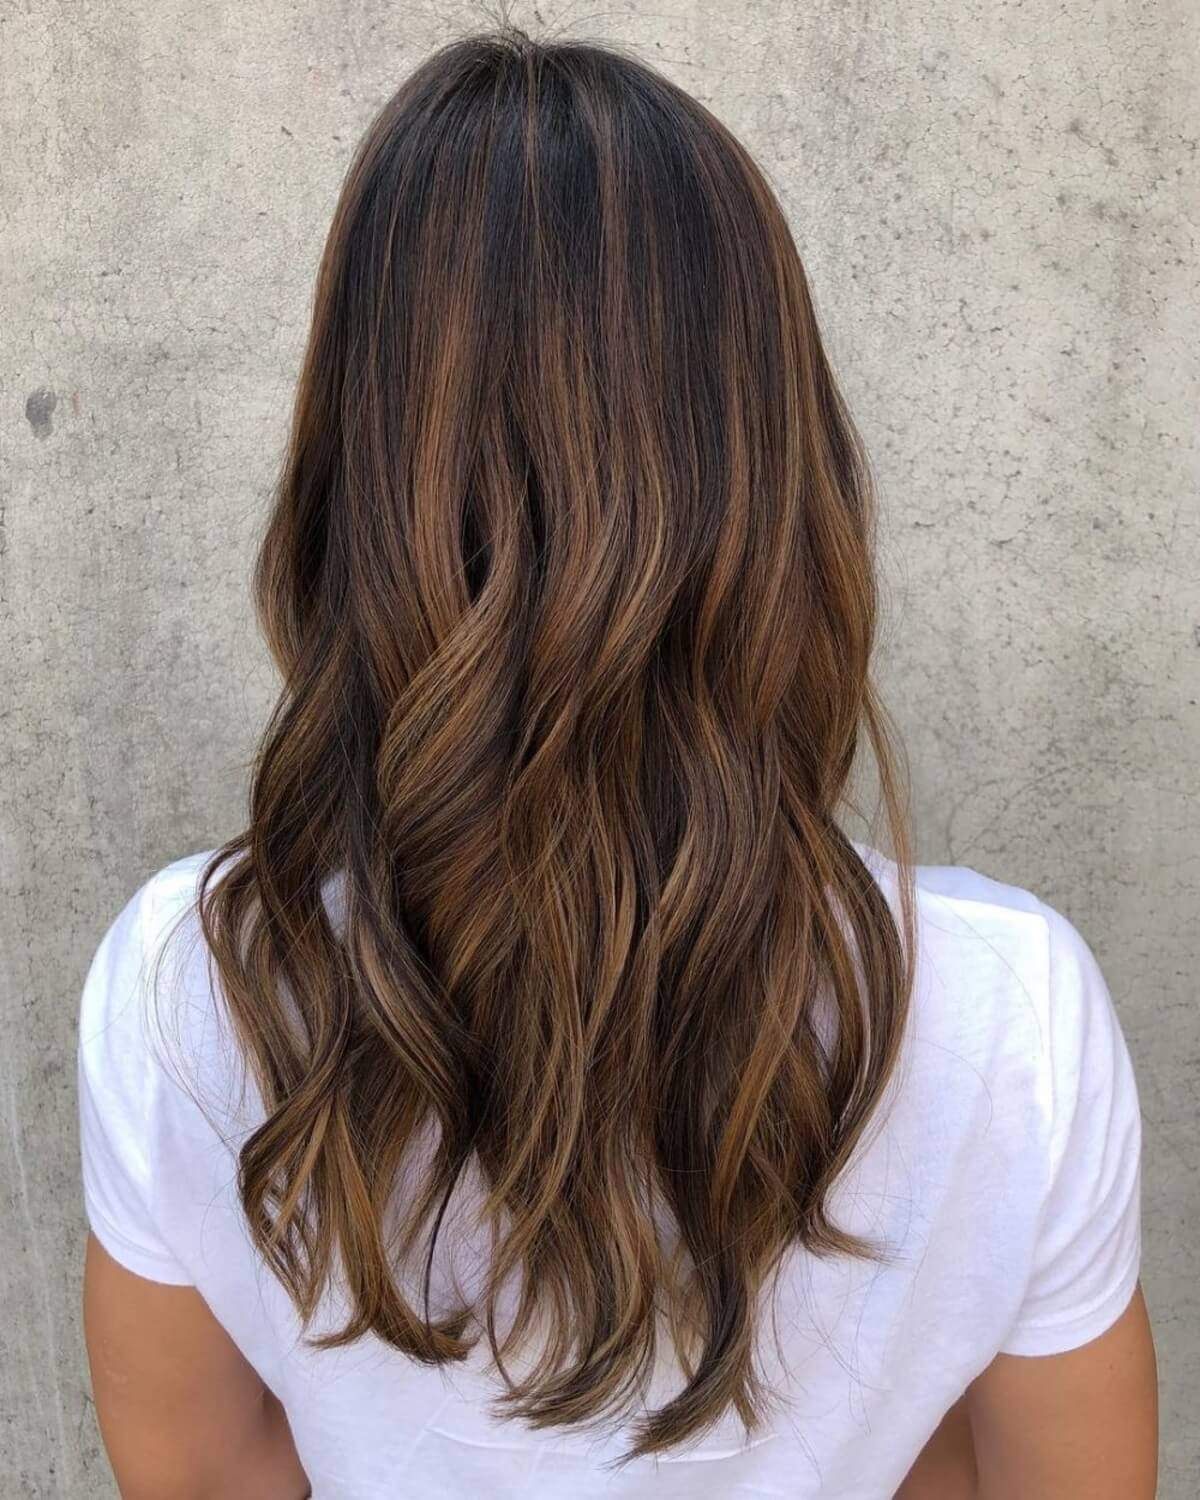 21 Amazing Ways to Get Sandy Brown Hair to Freshen-Up Your Dull Locks